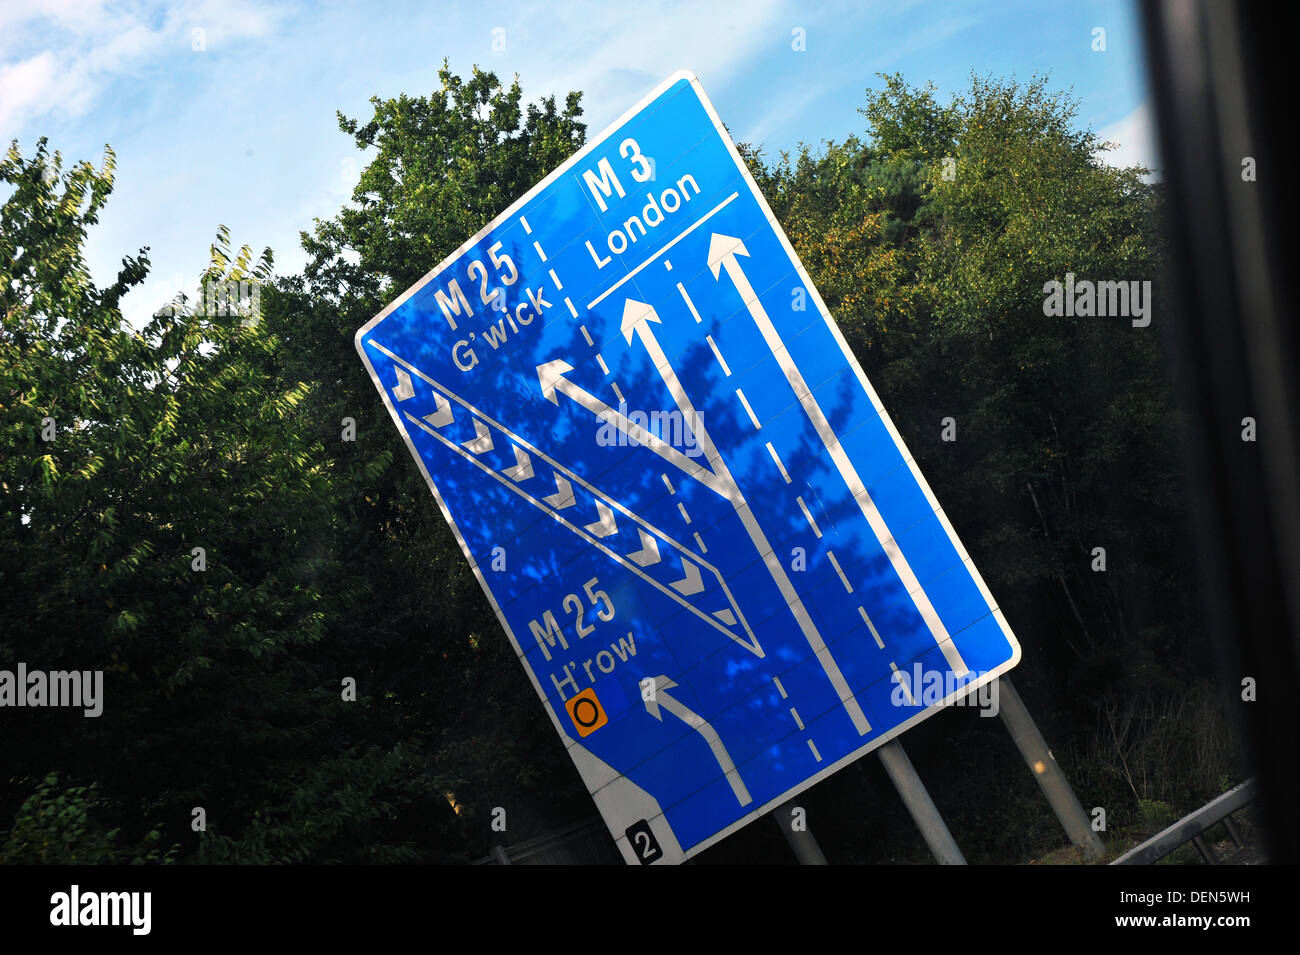 A British road sign directing traffic to Gatwick and Heathrow airports as well as London. - Stock Image